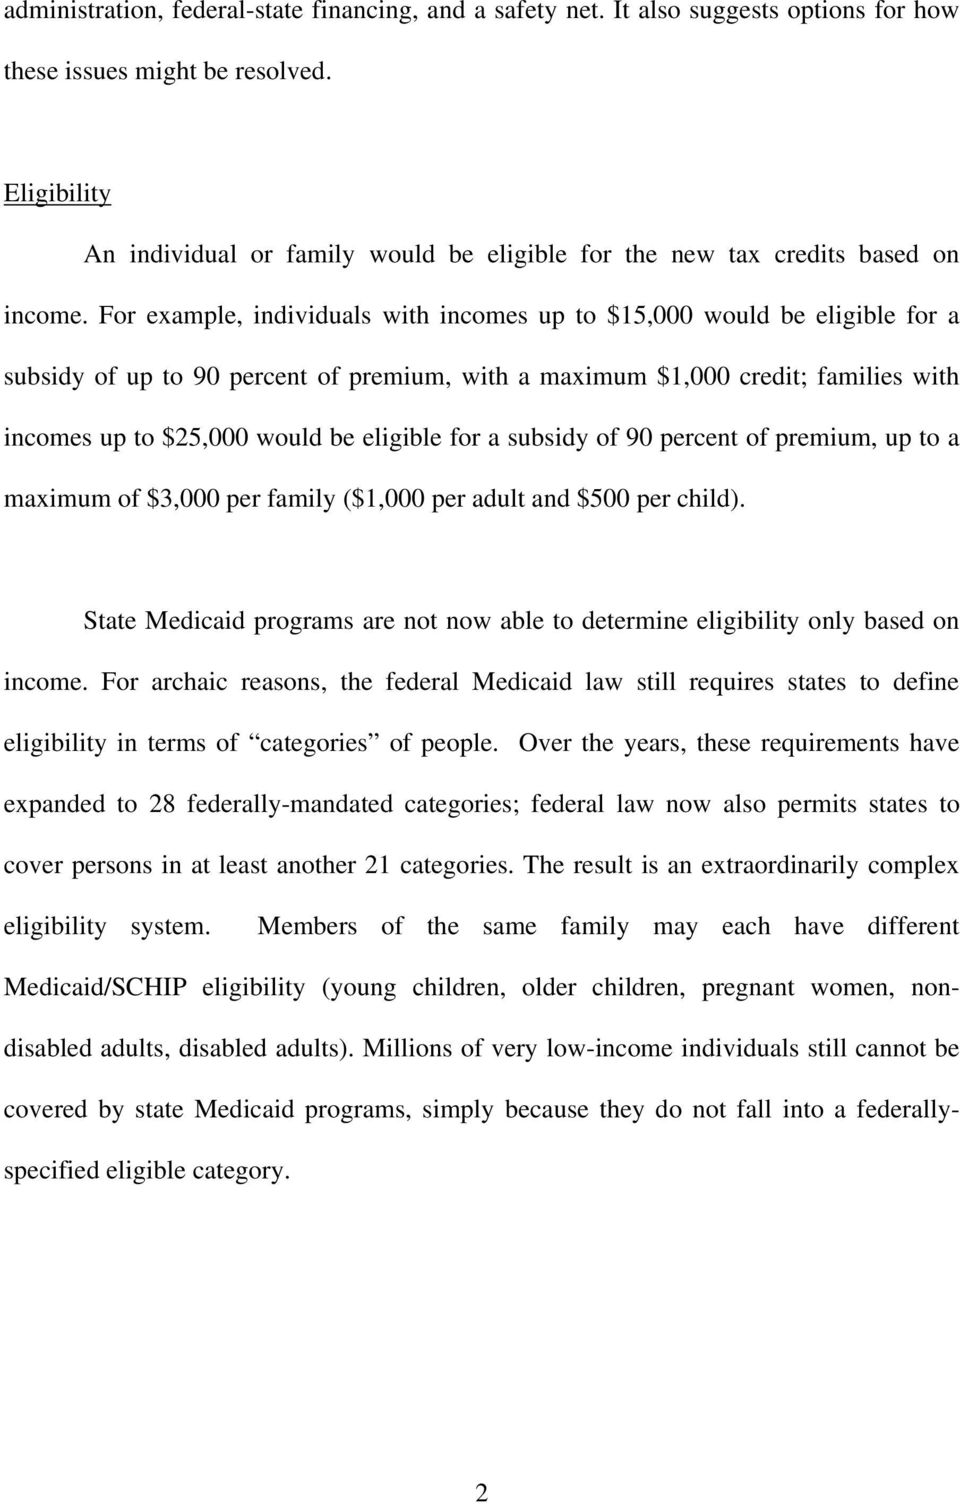 For example, individuals with incomes up to $15,000 would be eligible for a subsidy of up to 90 percent of premium, with a maximum $1,000 credit; families with incomes up to $25,000 would be eligible